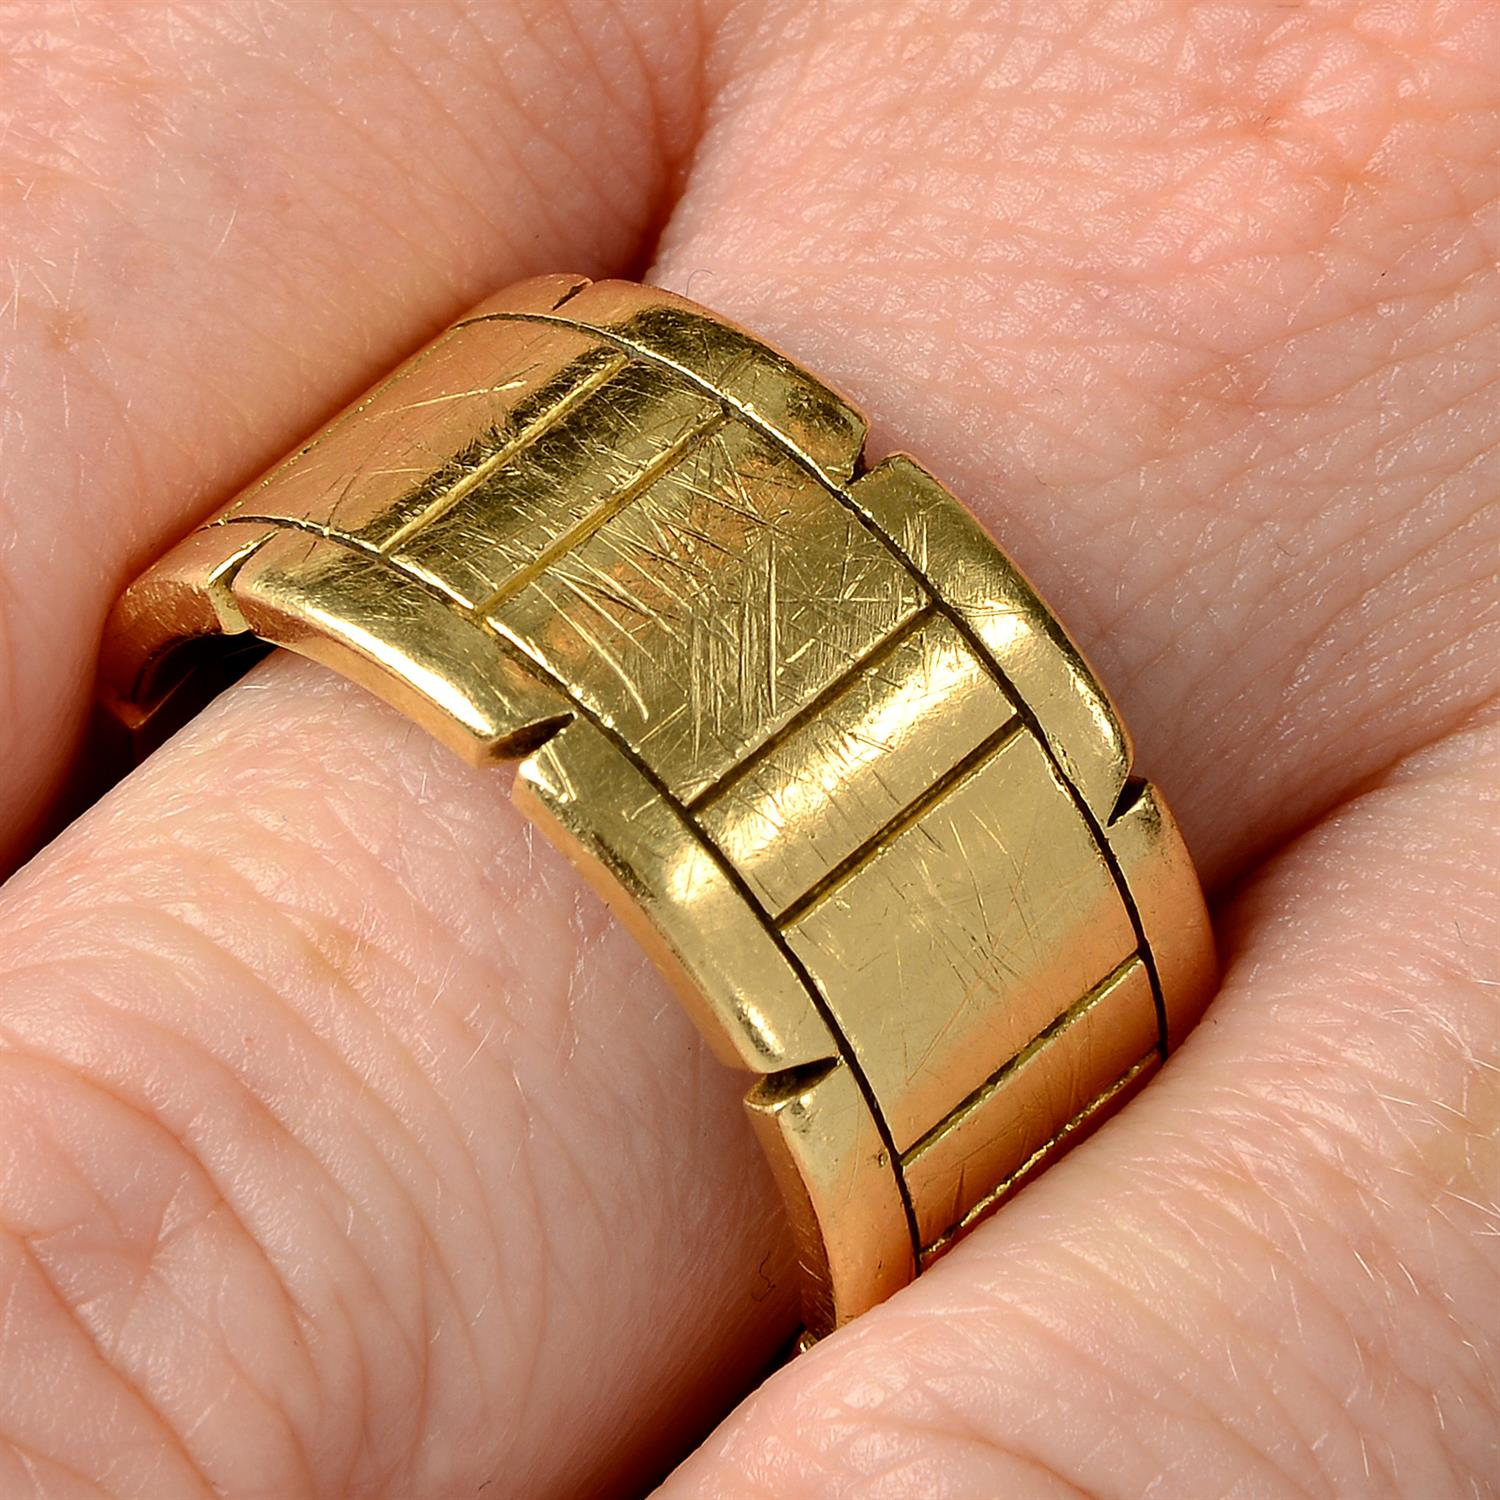 An 18ct gold 'Tank Francaise' ring, by Cartier.